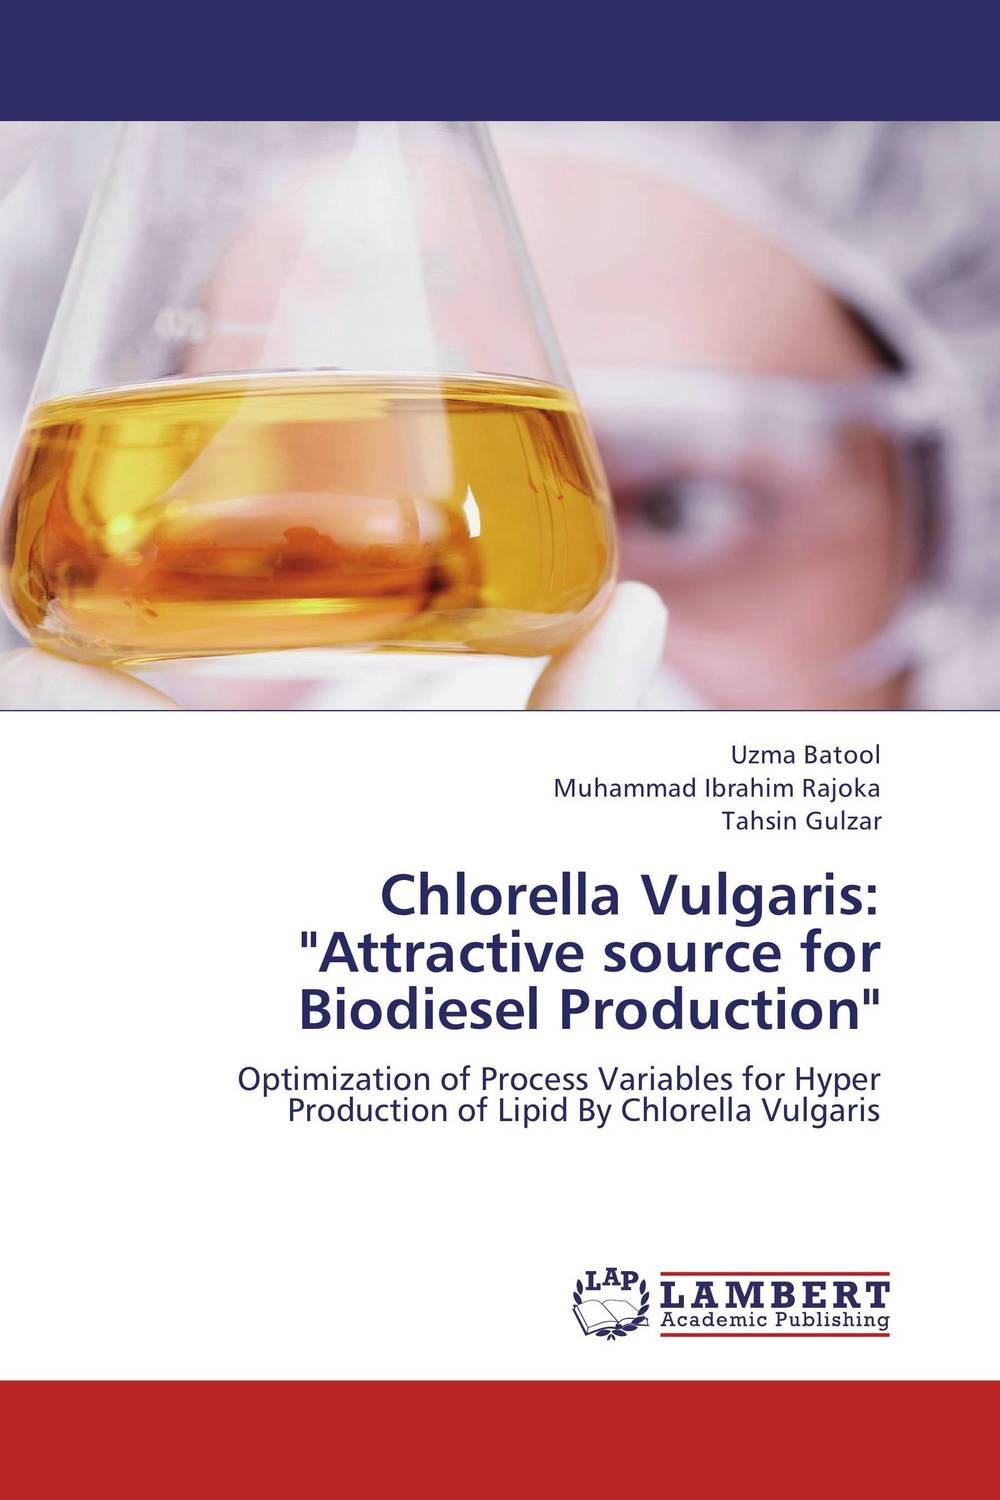 Chlorella Vulgaris: Attractive source for Biodiesel Production lipid production by oleaginous yeasts